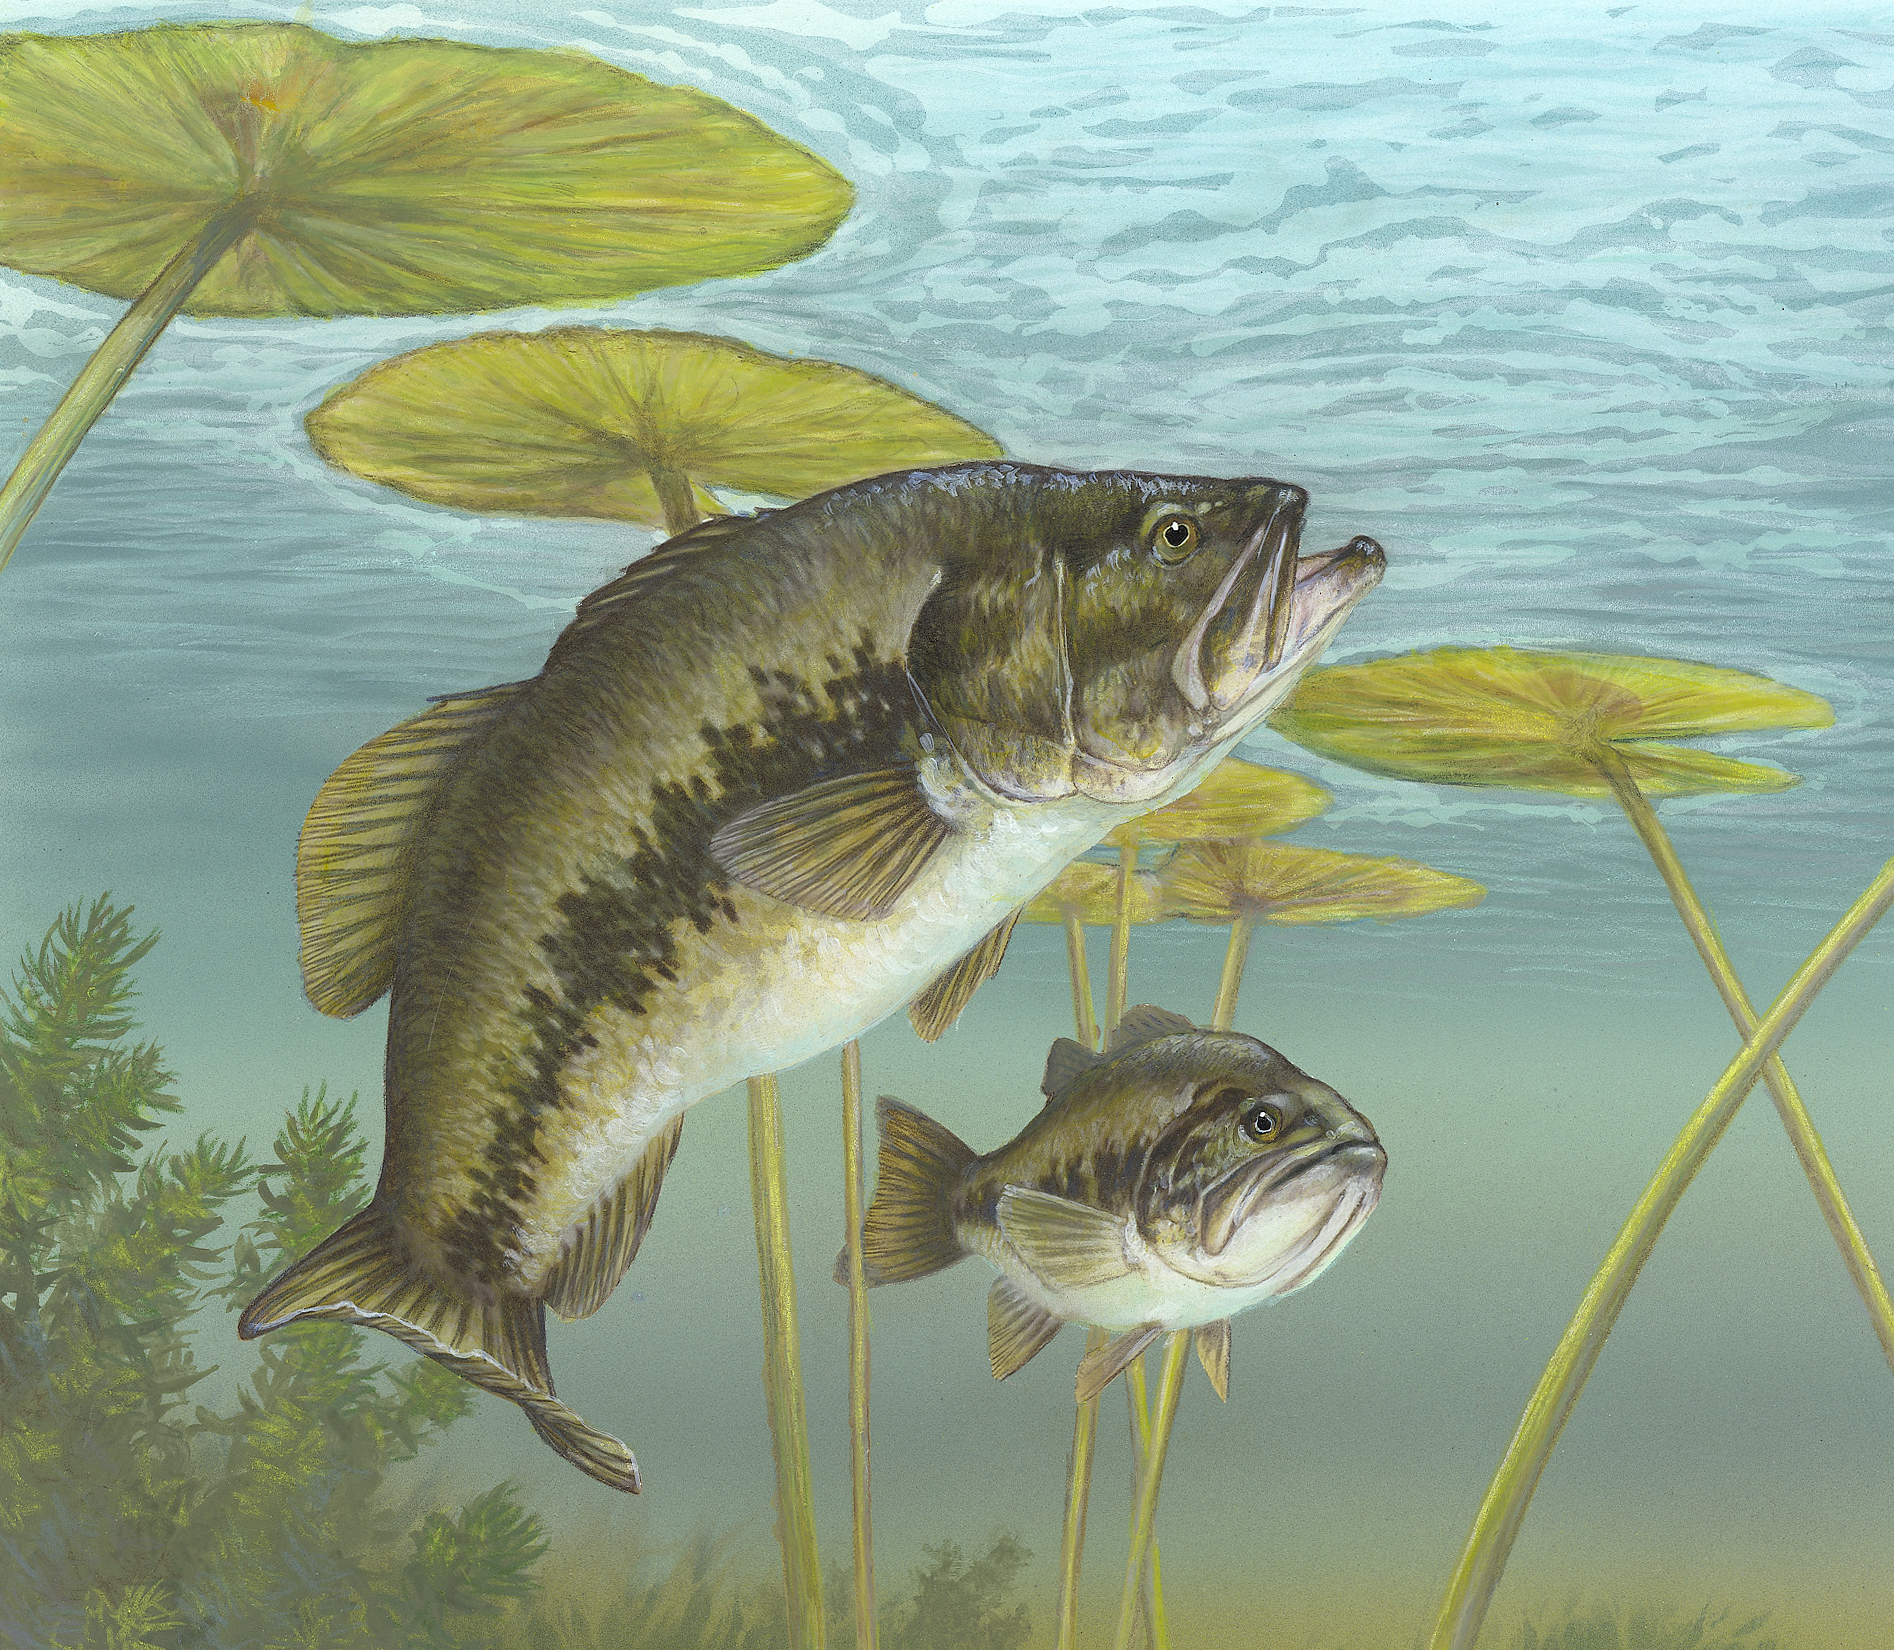 File:Largemouth...